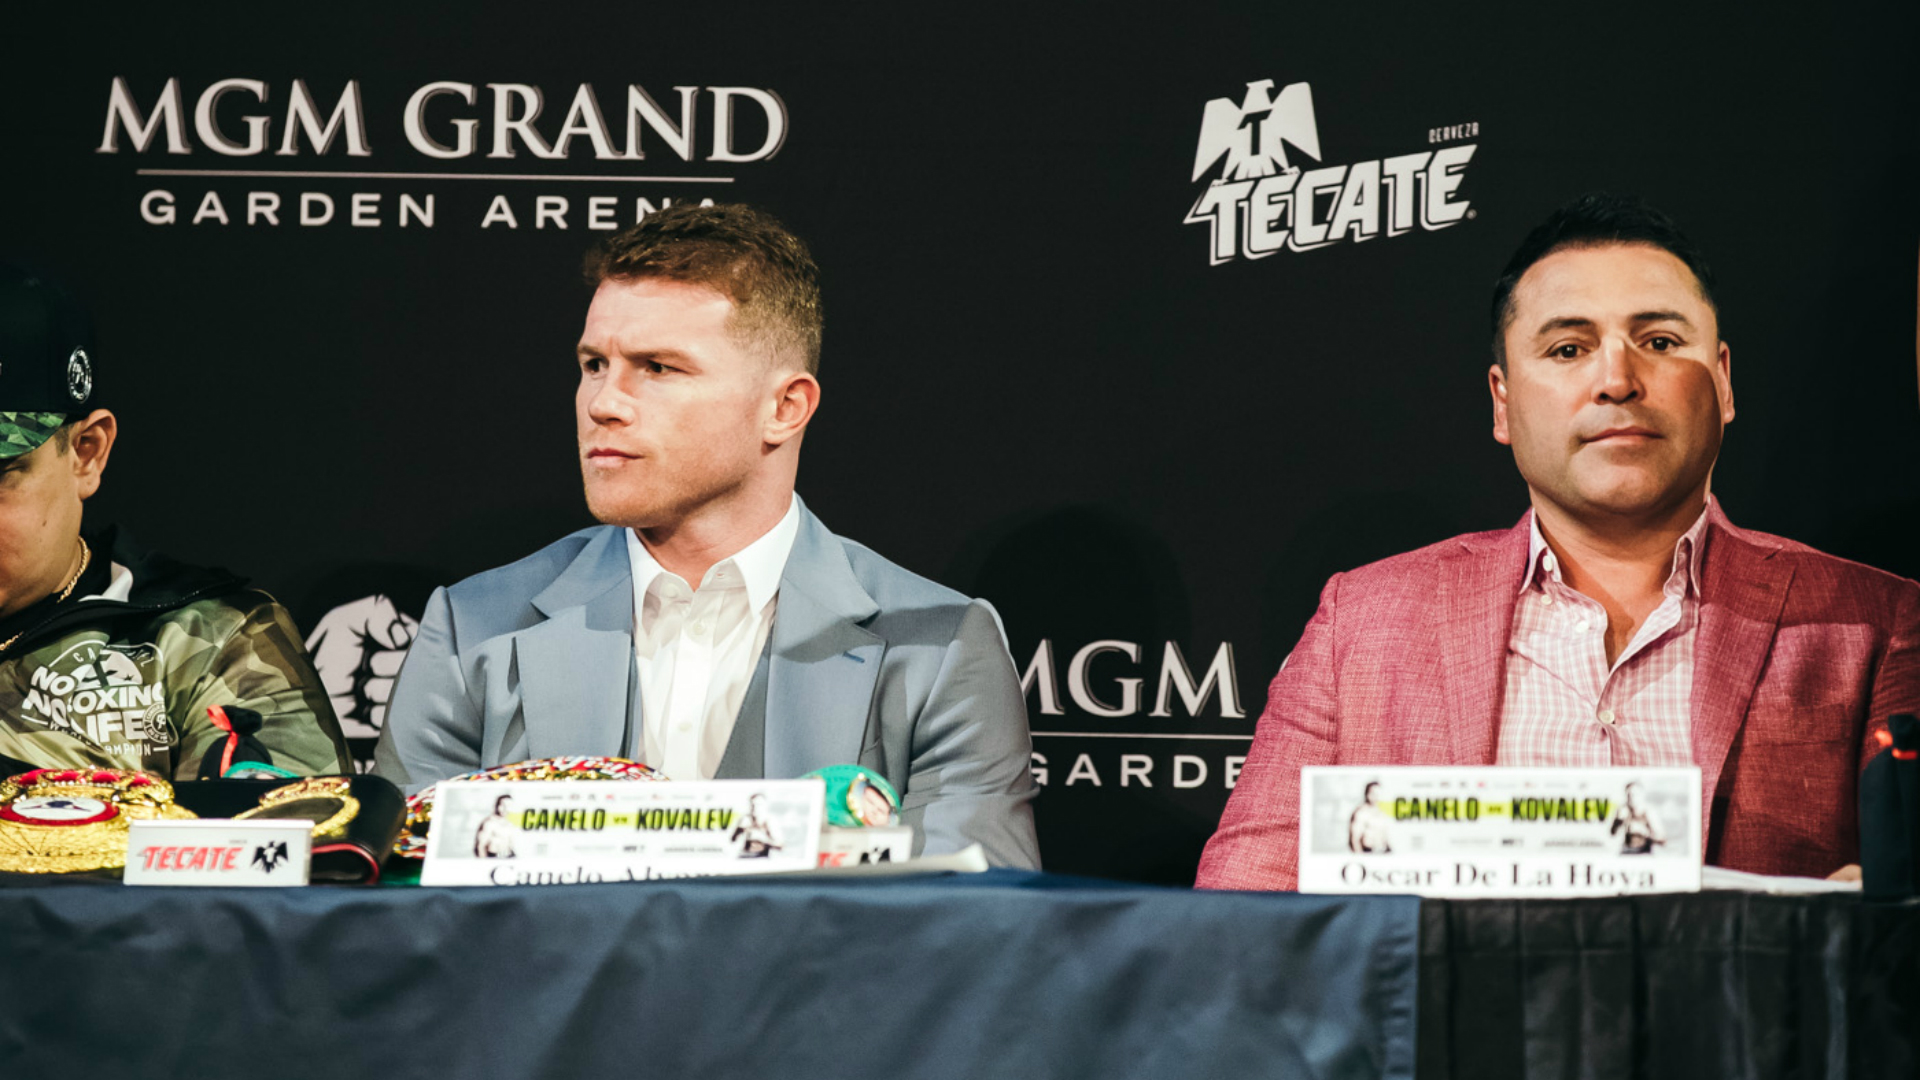 Canelo and De La Hoya - Canelo Alvarez Loses Round One Of Lawsuit Claim, Now Has Until September 28th To Amend